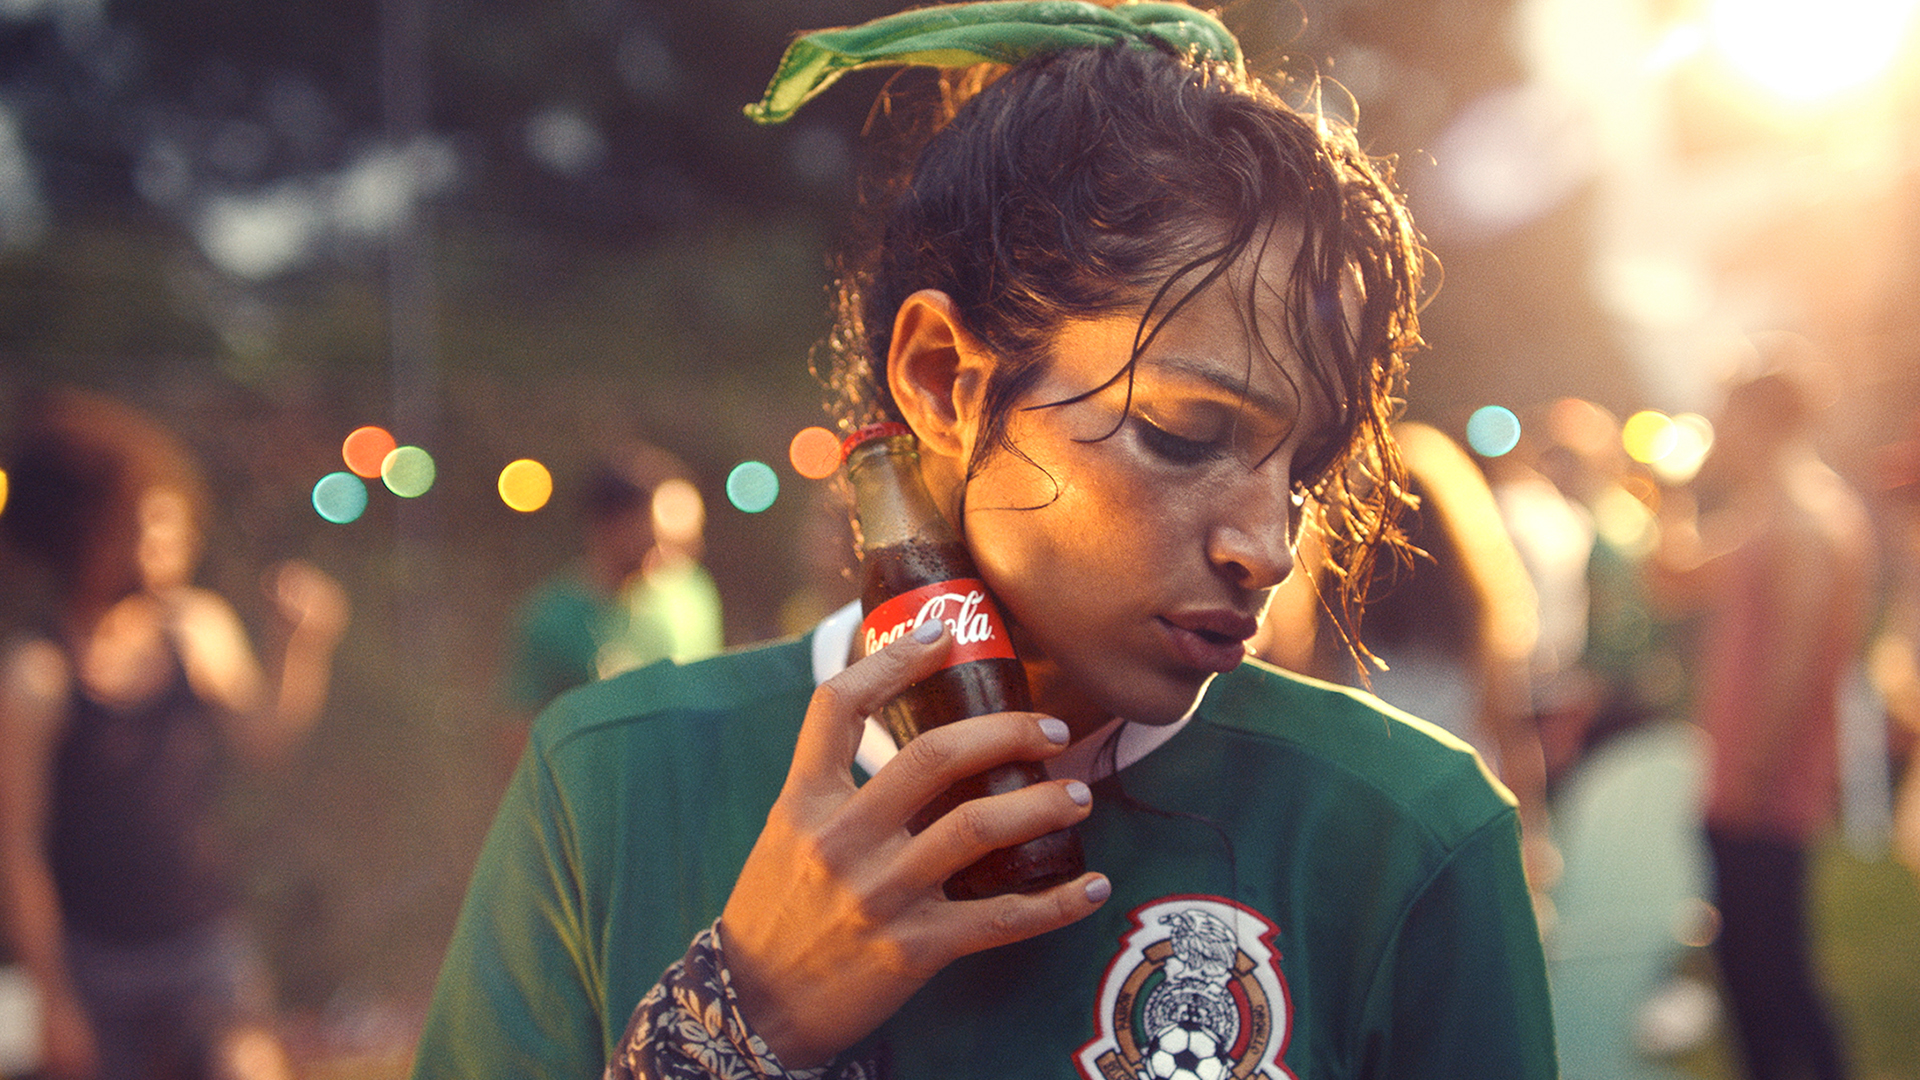 Coca-Cola - Mexican Girl